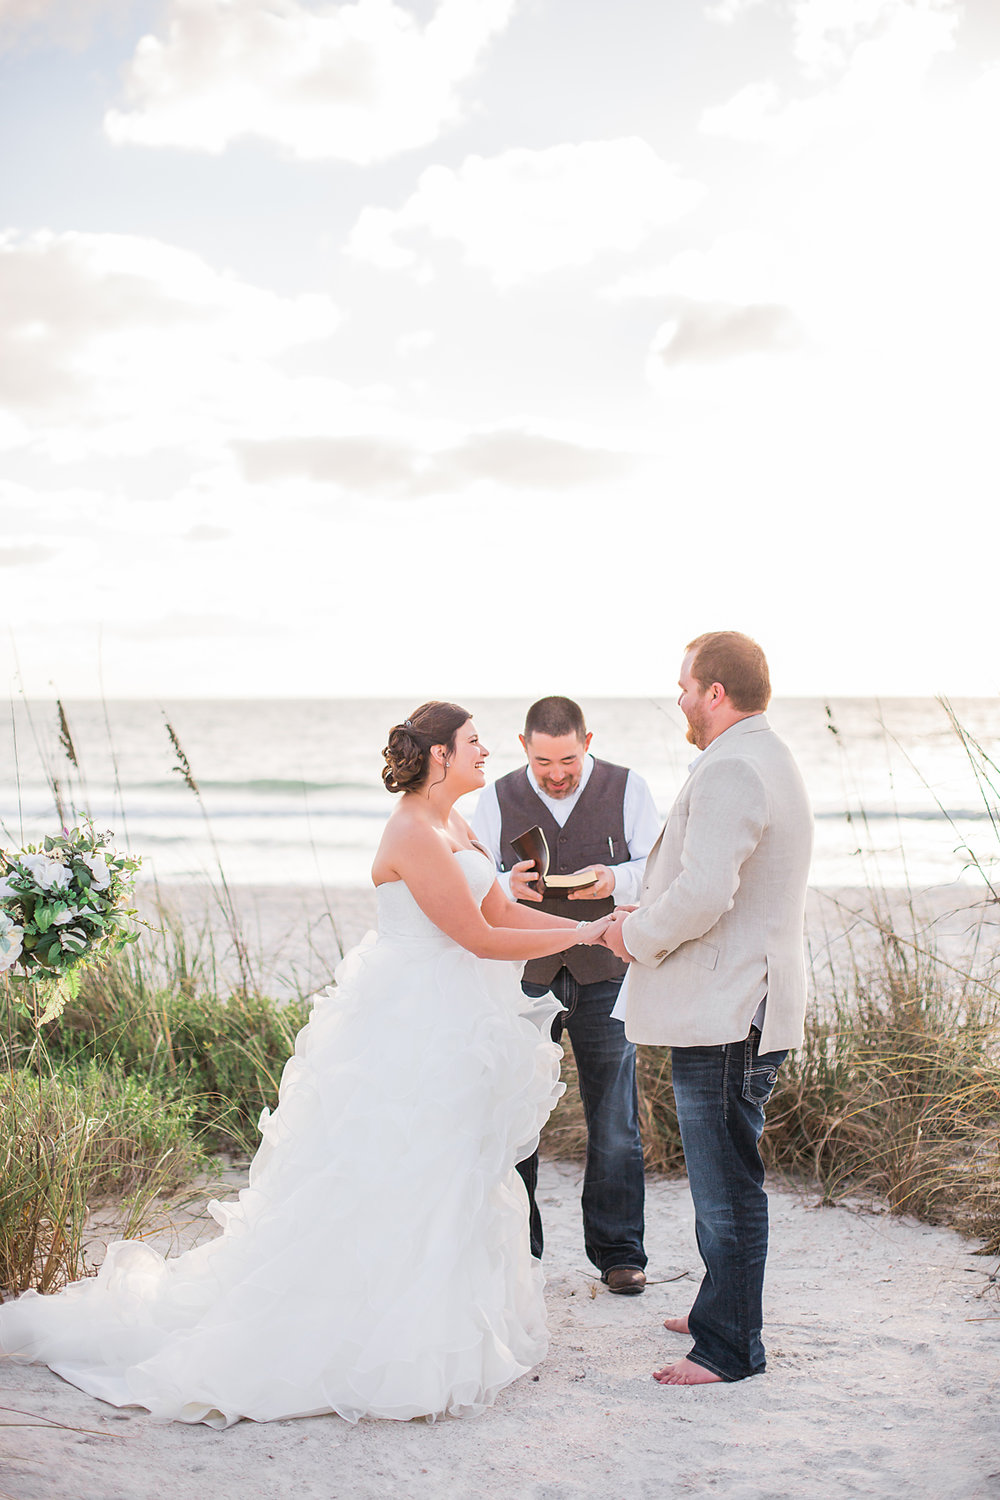 Bailey + Chalin - Anna Maria Island Wedding Photographer - Destination Wedding Photography - Emily & Co. Photography - Beach Wedding Photography (22).jpg